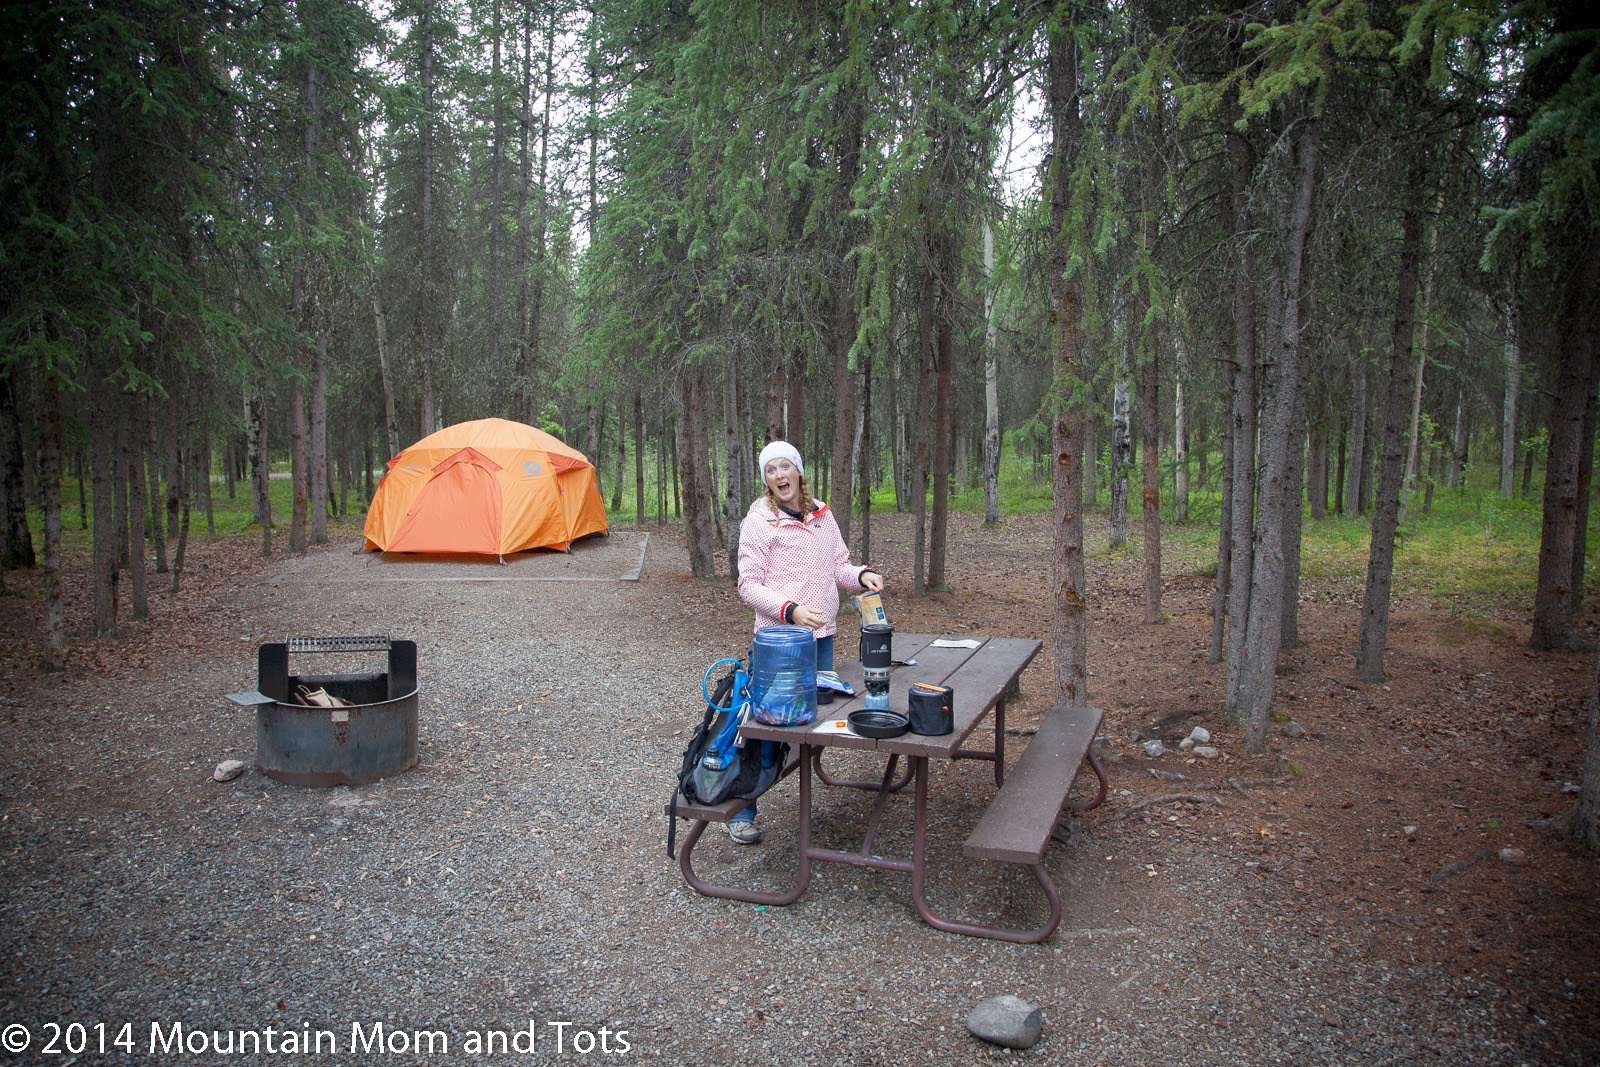 Price Of Car Camping In Porcupine Mountain State Park